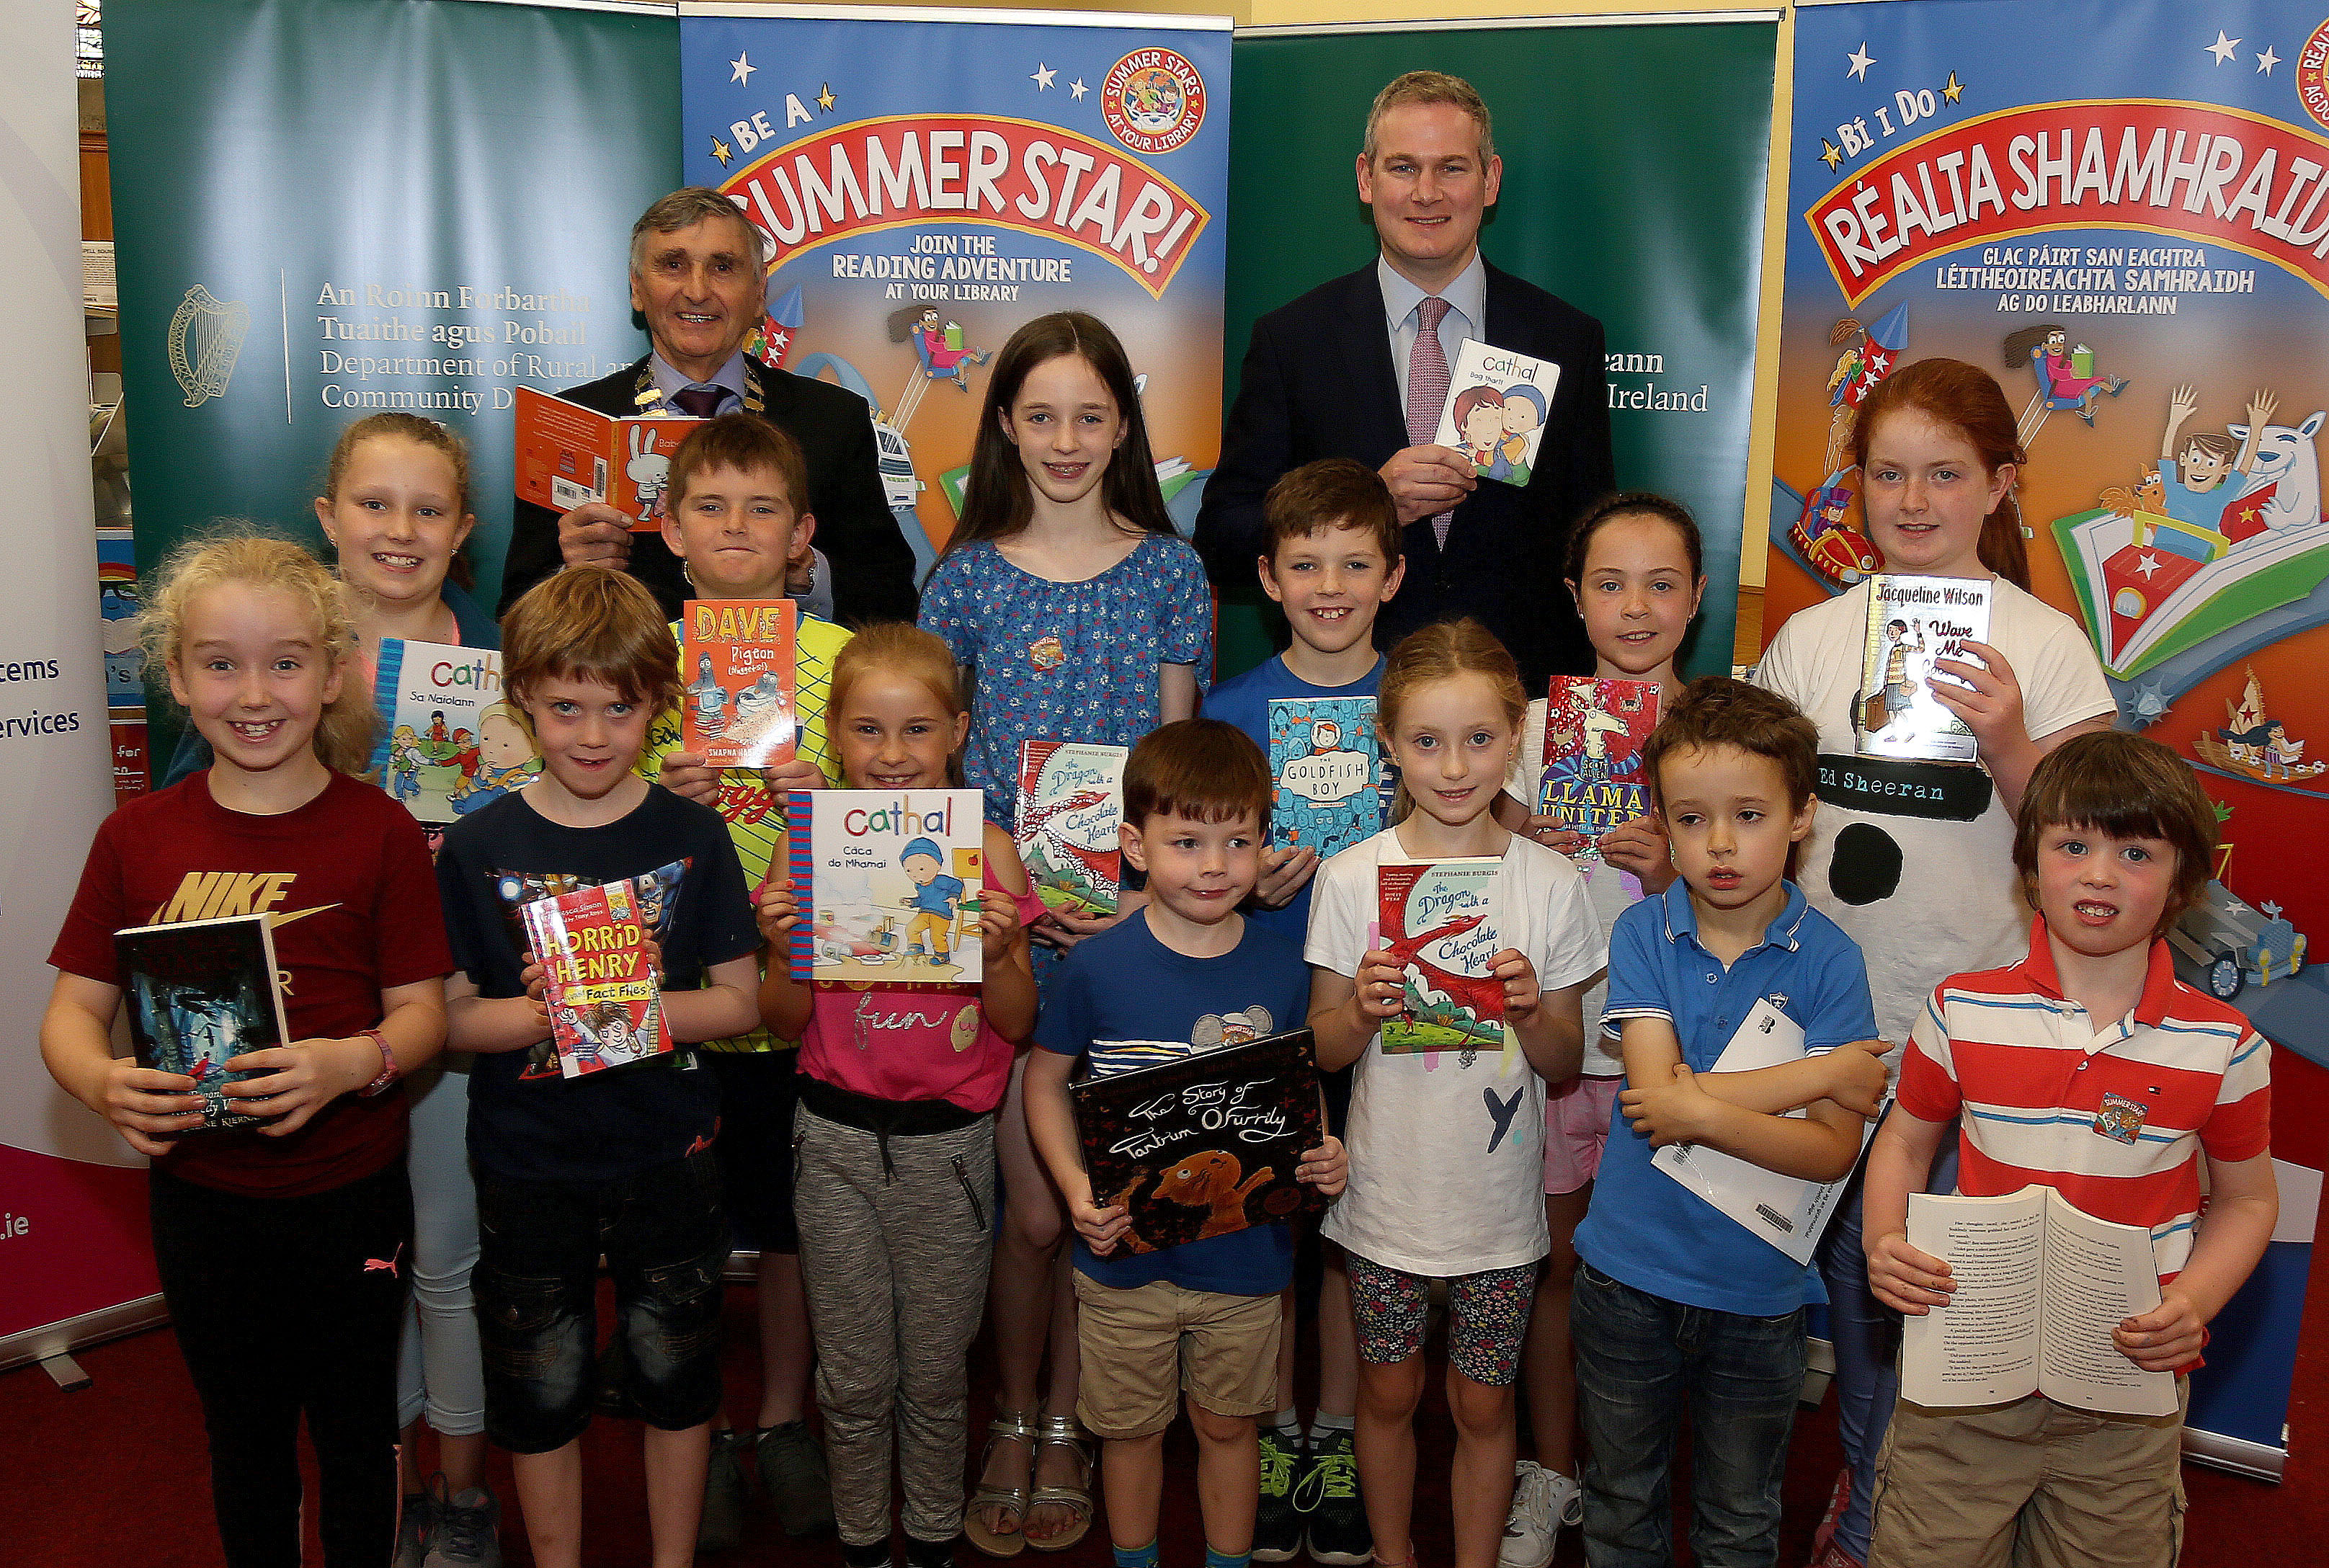 Minister Kyne Launches The Summer Stars Children's Reading Adventure 2018